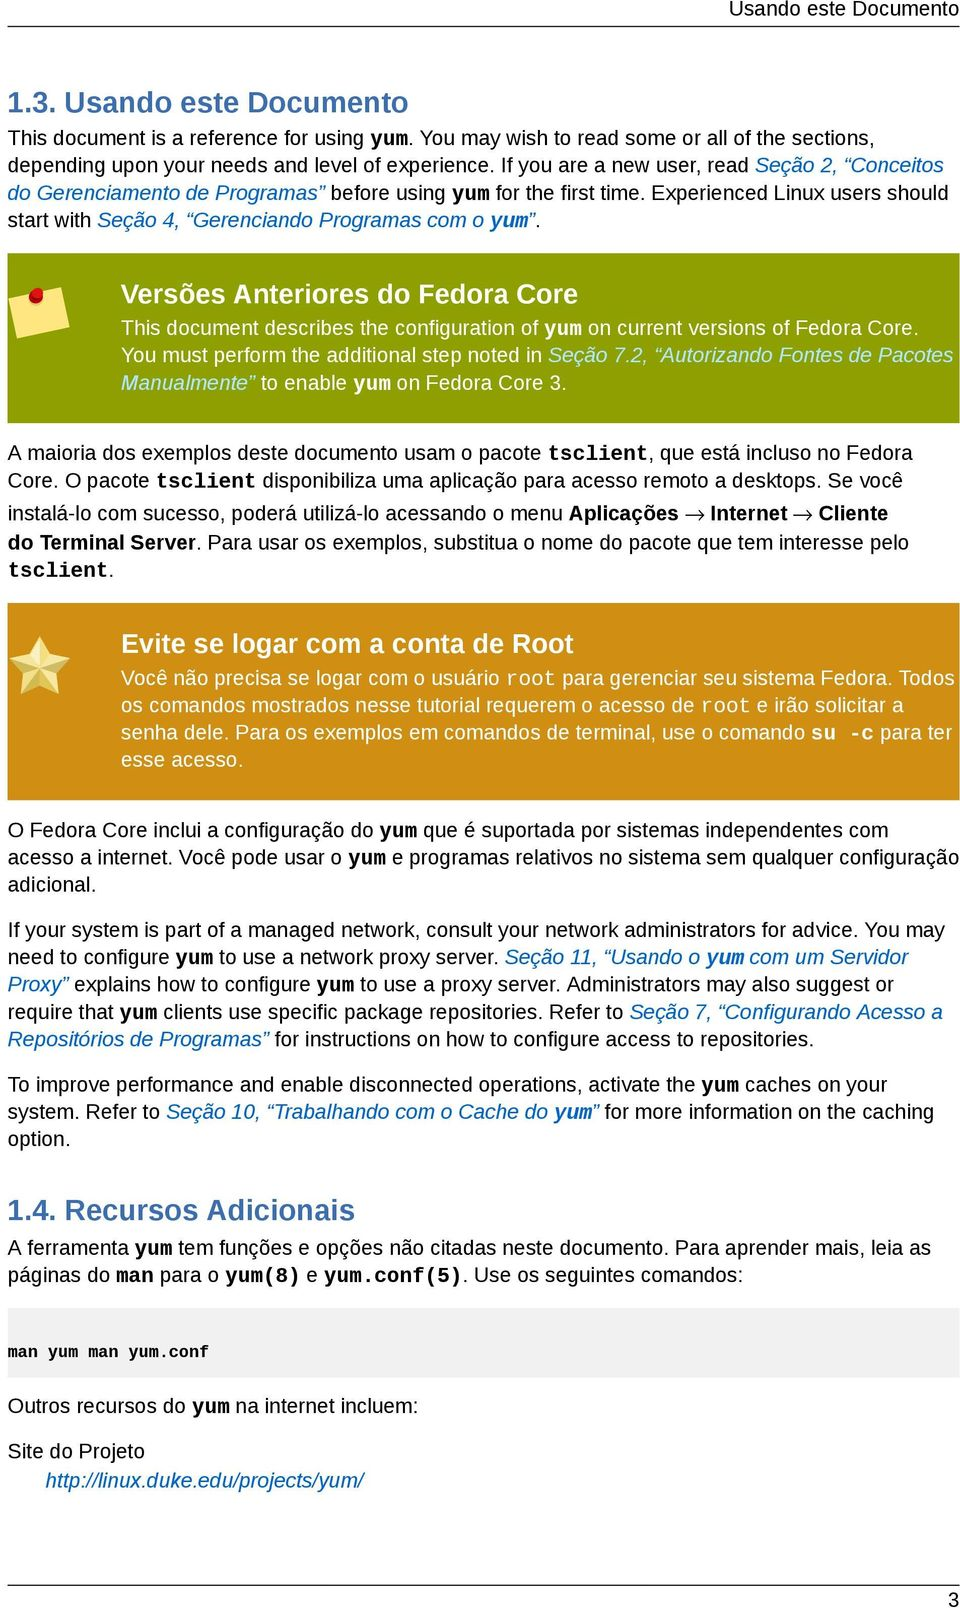 Versões Anteriores do Fedora Core This document describes the configuration of yum on current versions of Fedora Core. You must perform the additional step noted in Seção 7.